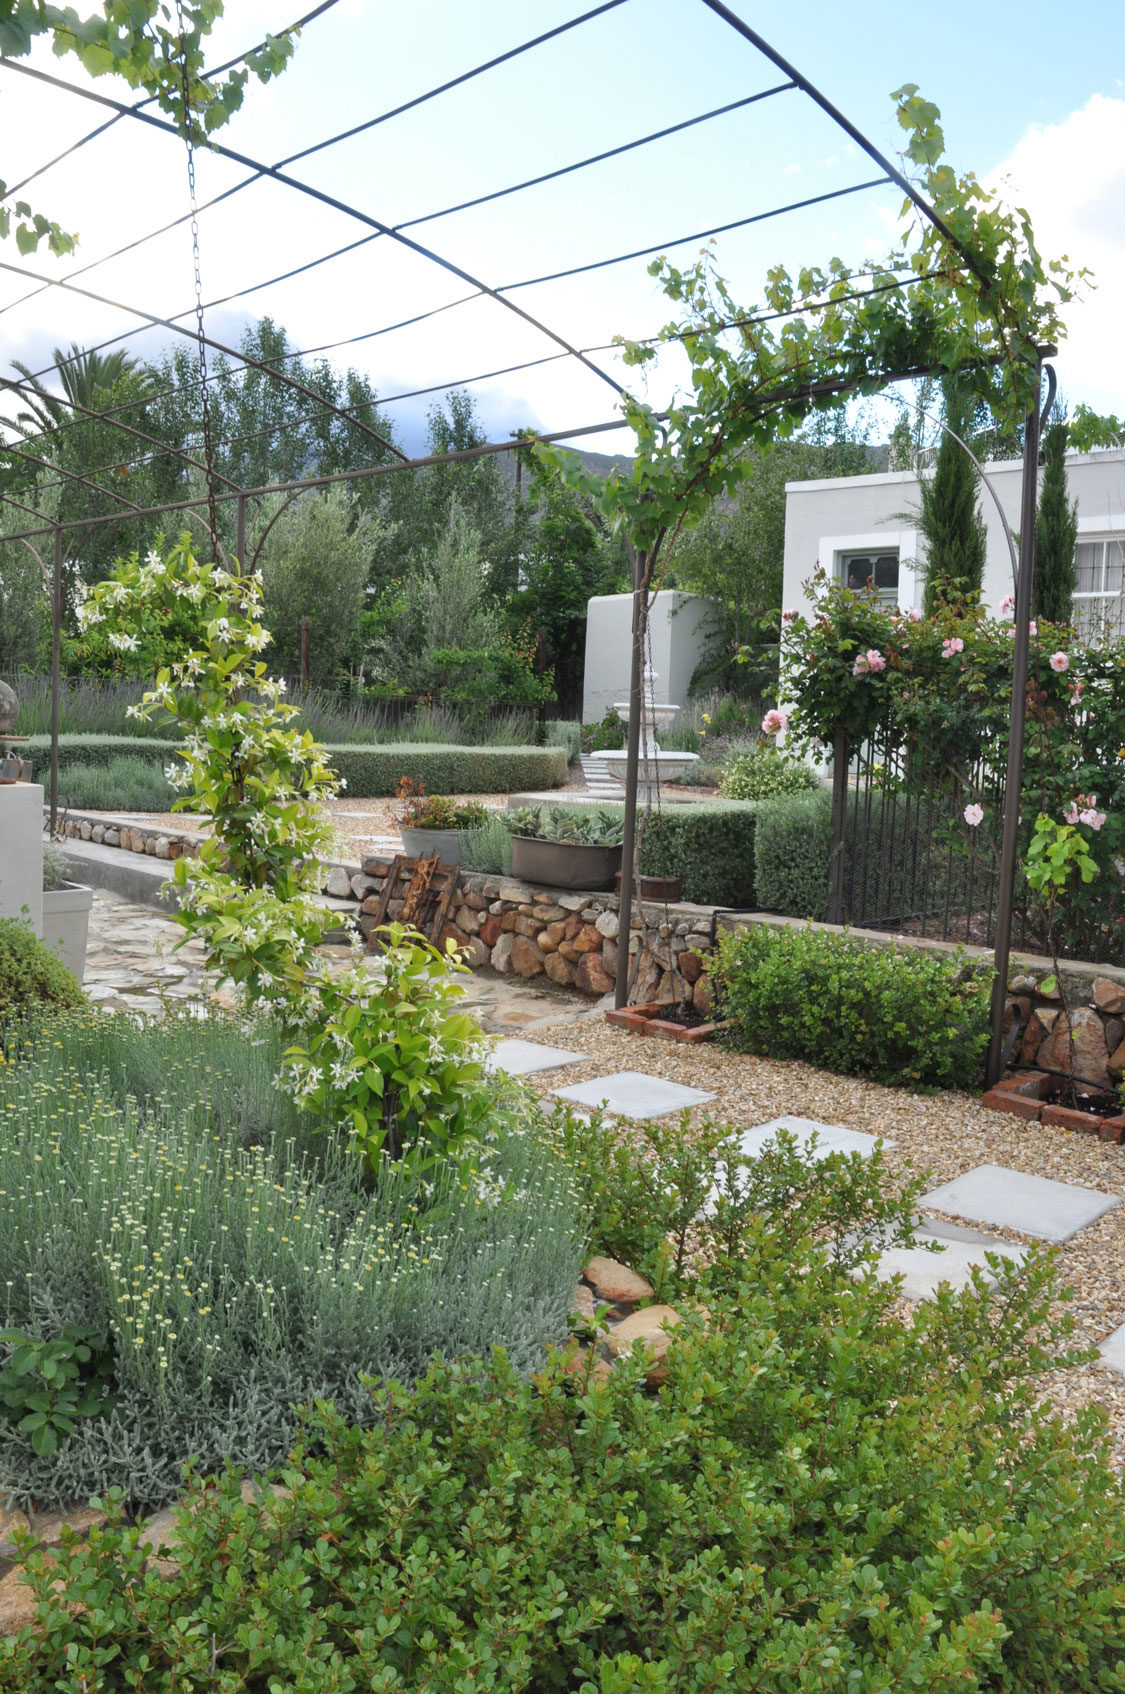 Gardening In Drought Conditions: Watering And Choosing